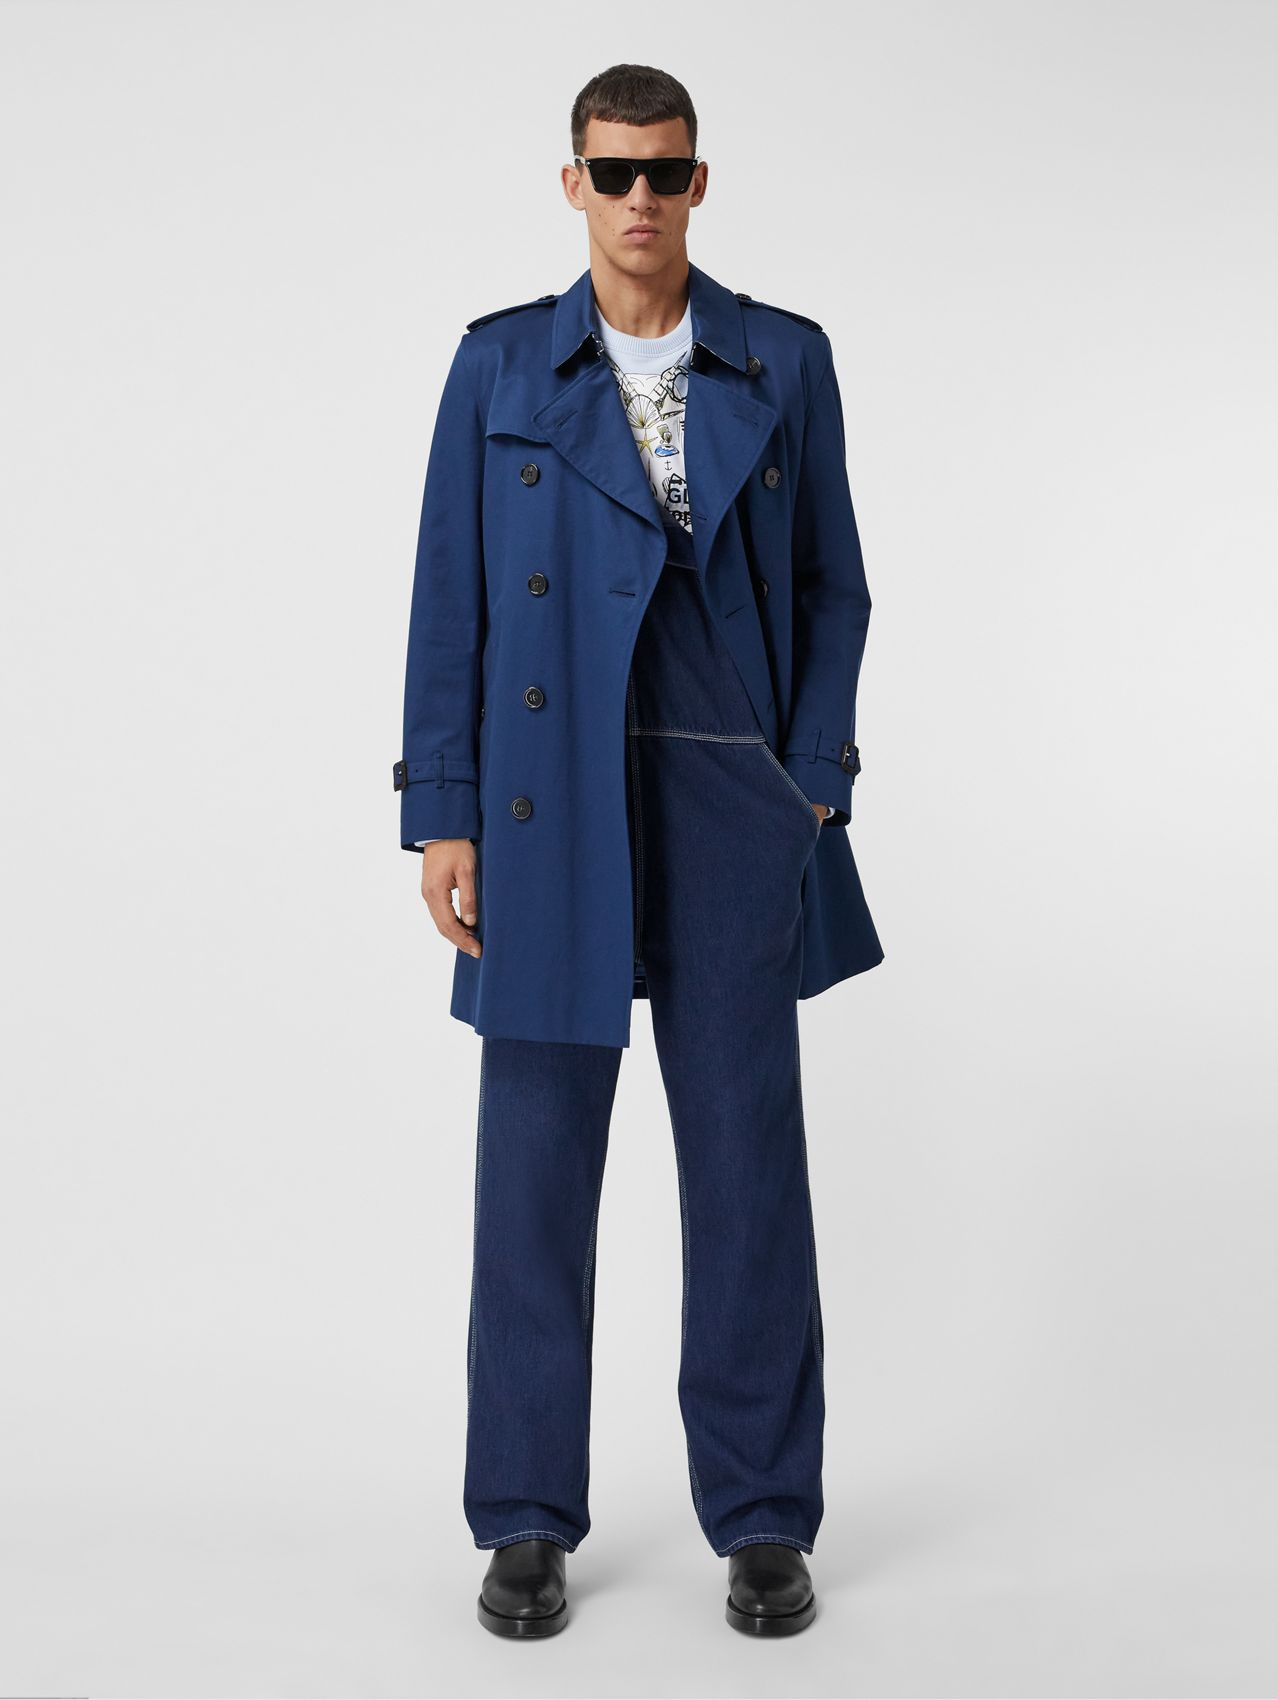 Trench coat estilo Kensington médio in Azul Nanquim